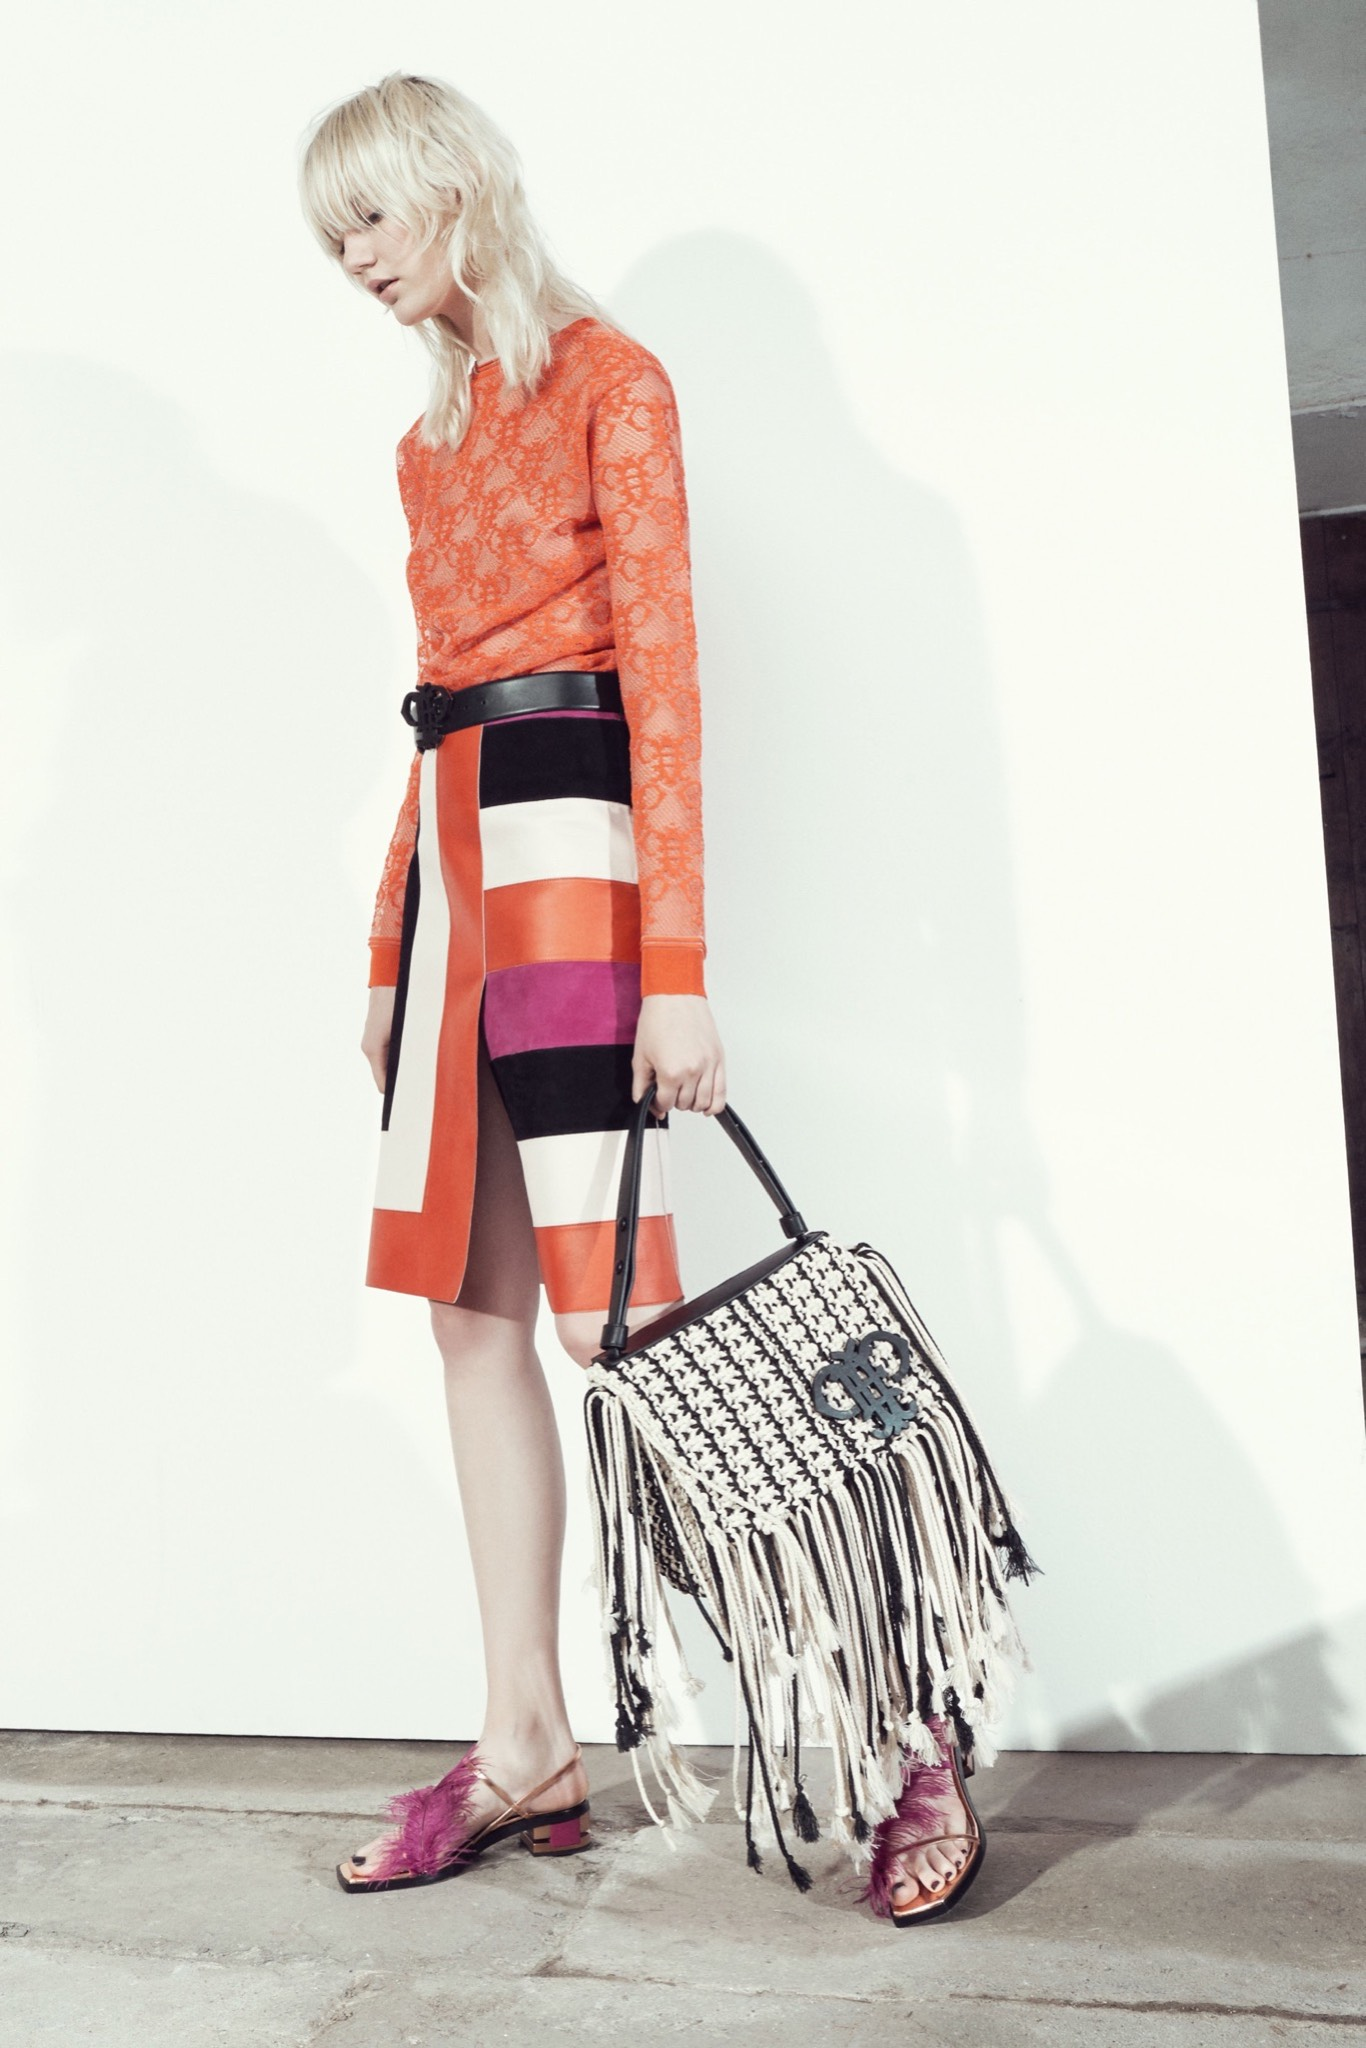 emilio pucci 015 1366 Puccis New Prints Tap into the Zeitgeist With Selfie Sticks (Yes, Really)